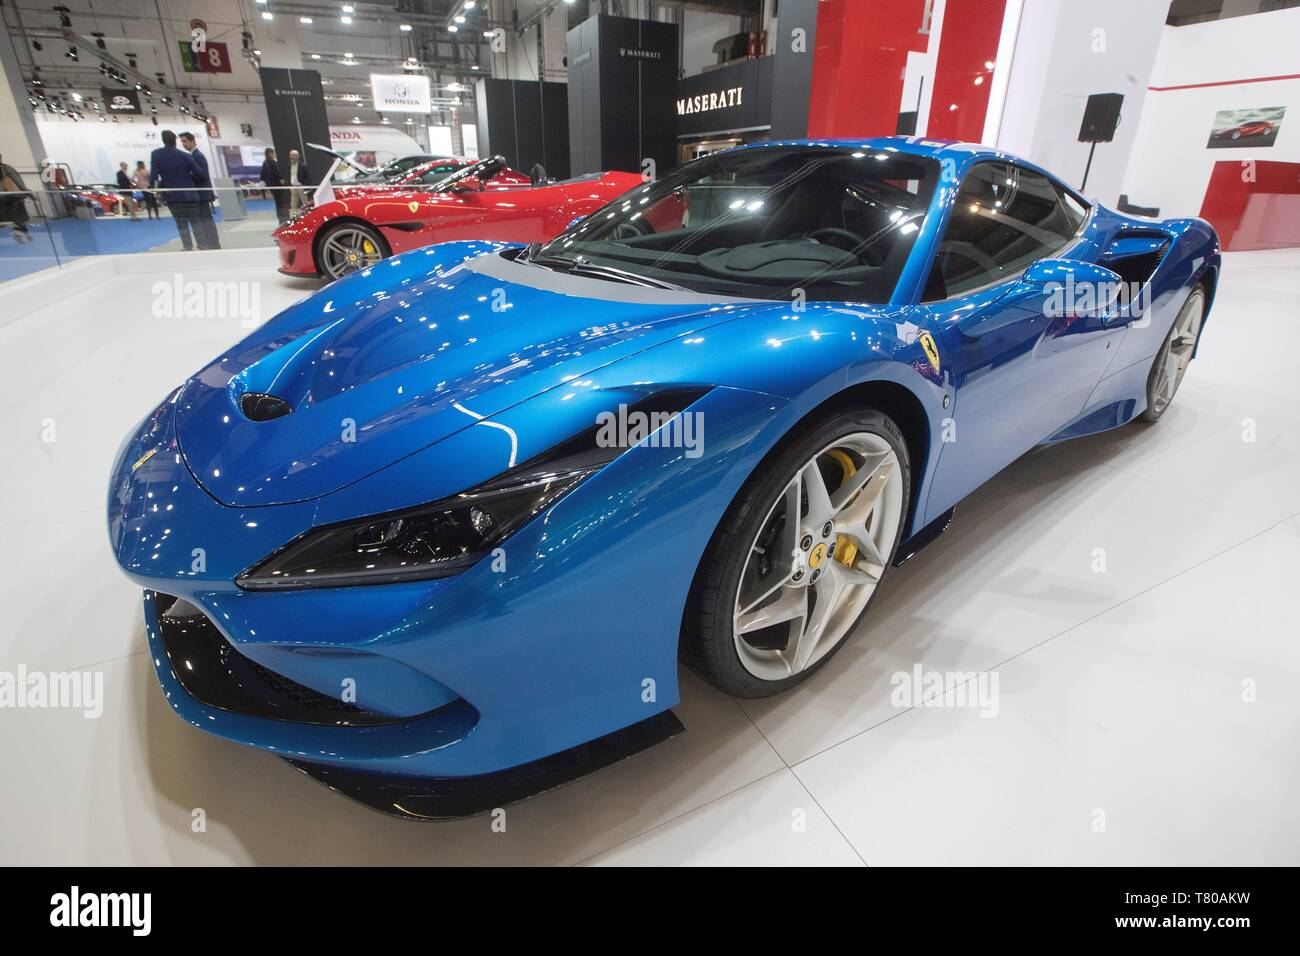 Model F8 Tributo of Ferrari is shown during the press and professionals day of the 100th Automobile Barcelona Fair, in Barcelona, Spain, 09 may 2019. The International Motor Show will celebrate its centenary edition from 11 to 19 May 2019. EFE/Marta Perez - Stock Image